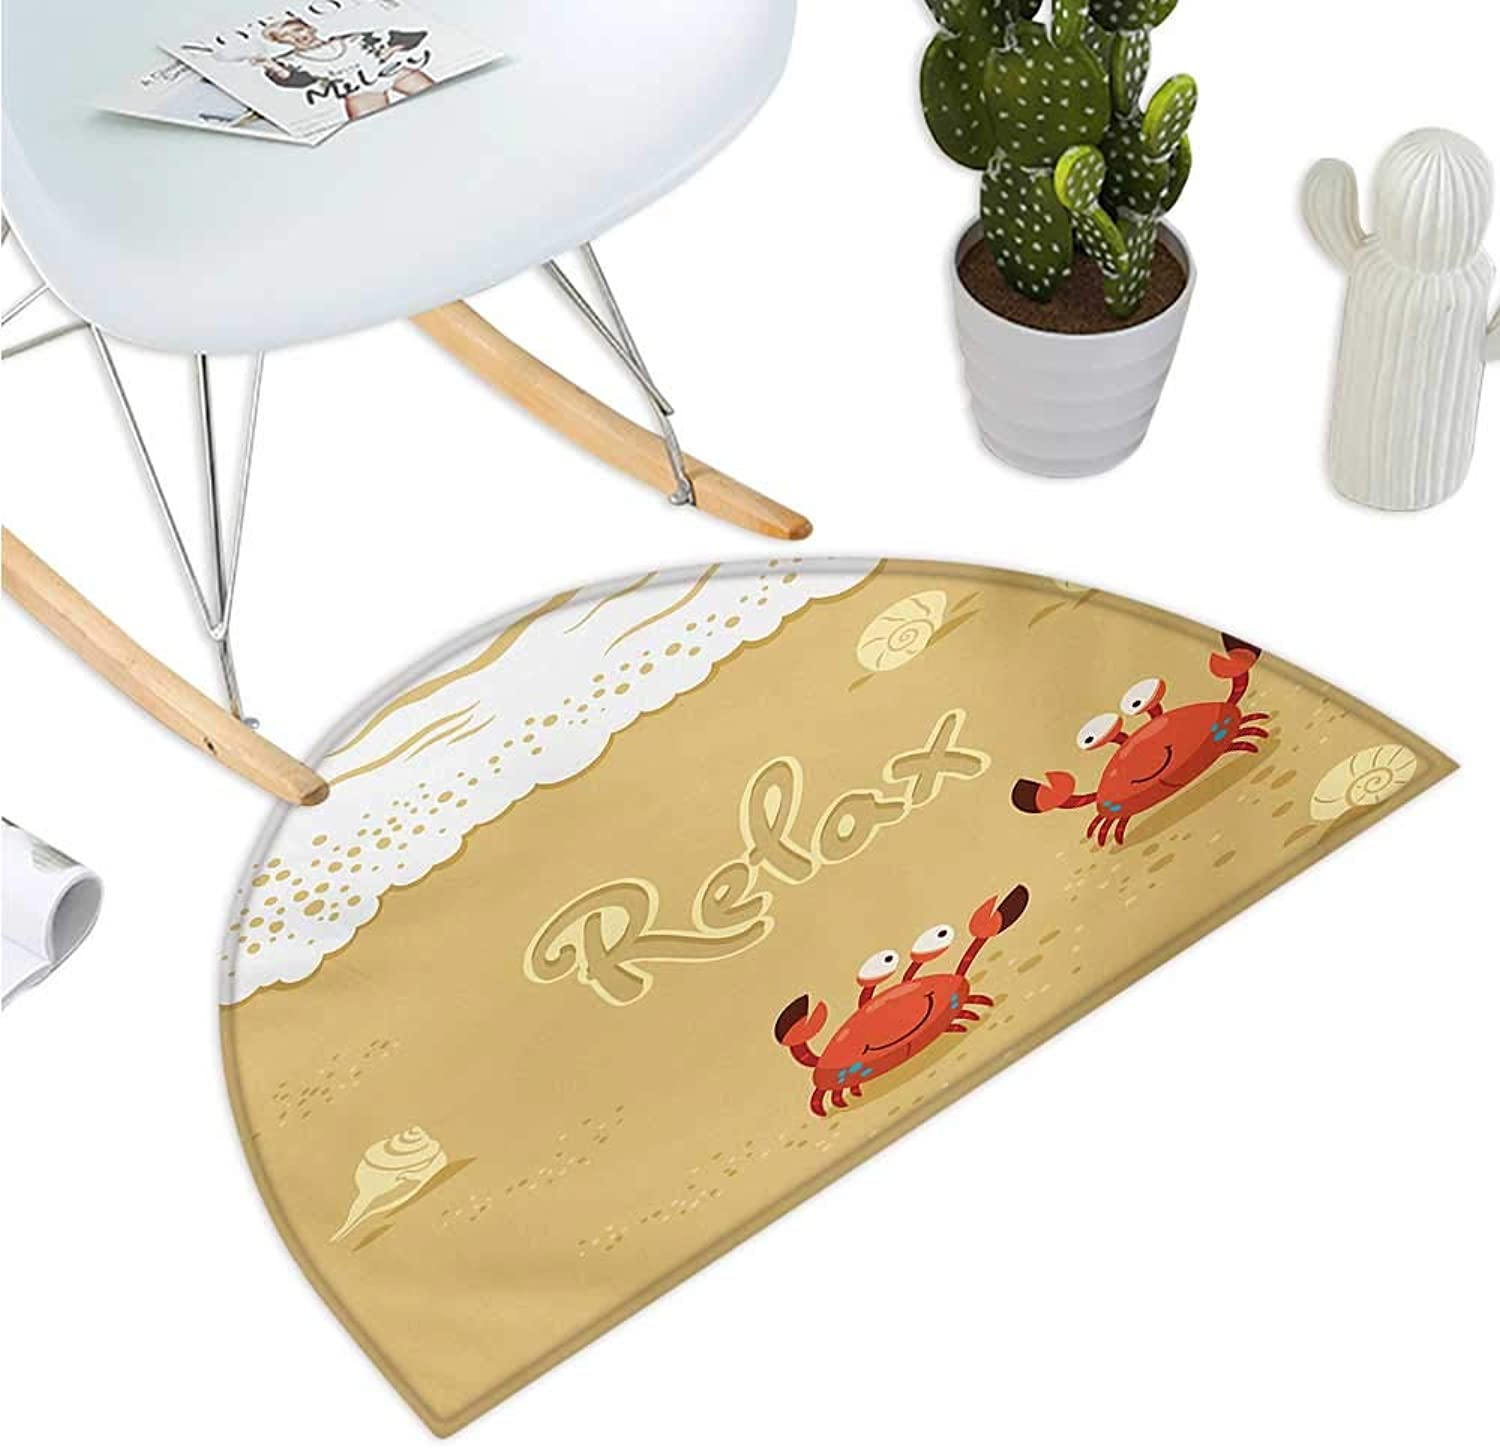 Crabs Semicircular Cushion Funny Summer Card with Cute Crabs on The Beach Holiday Vacation Theme Print Entry Door Mat H 39.3  xD 59  Sand Brown and White